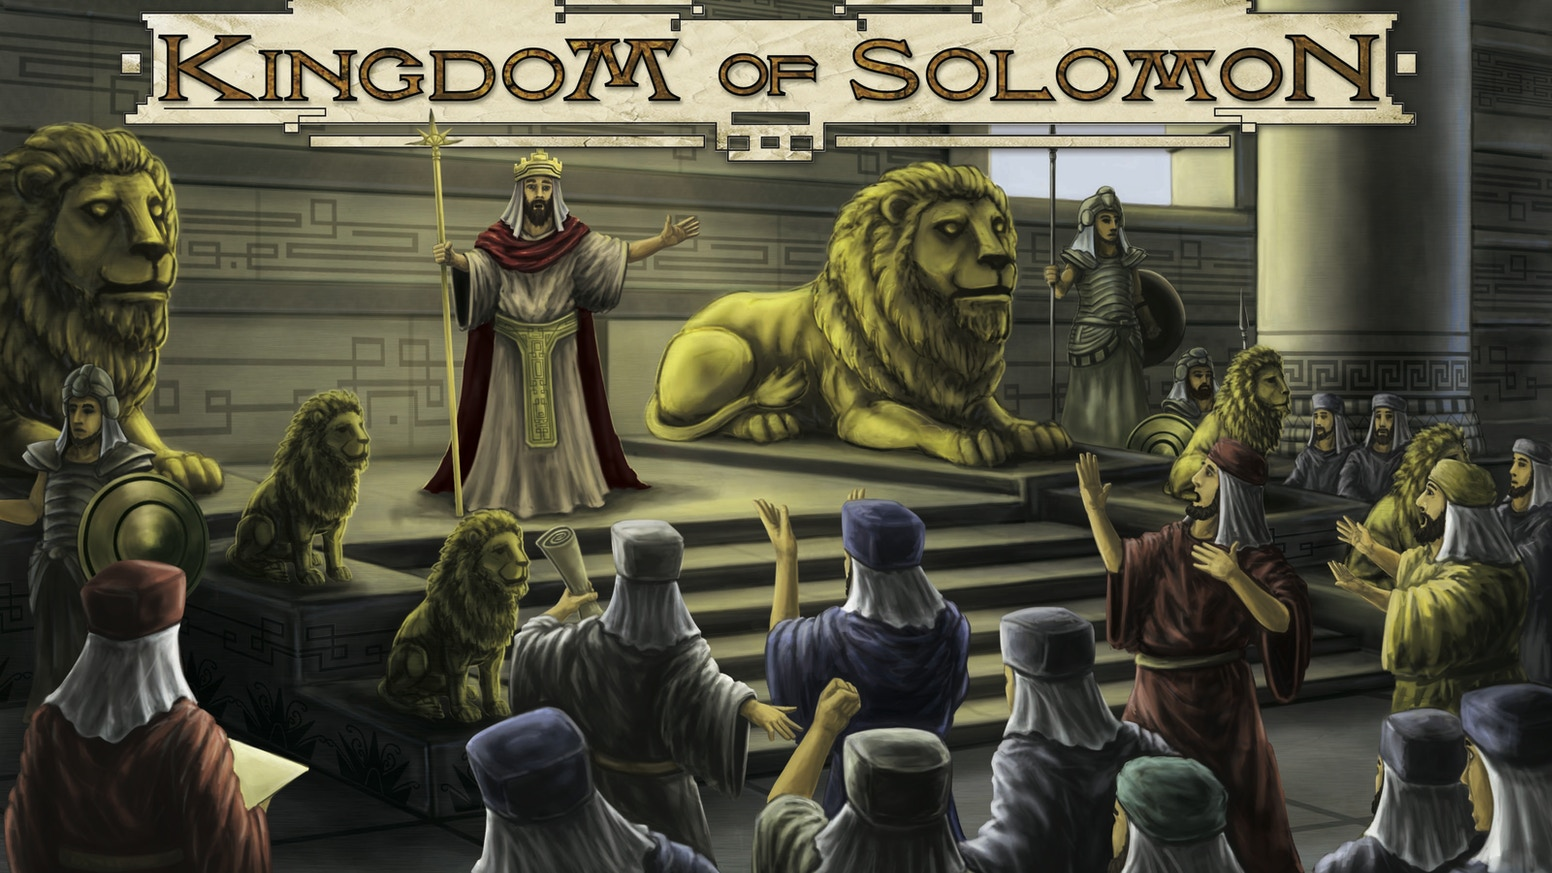 A worker placement game based in the time of King Solomon. Collect resources, build buildings, place roads, find your fortune!